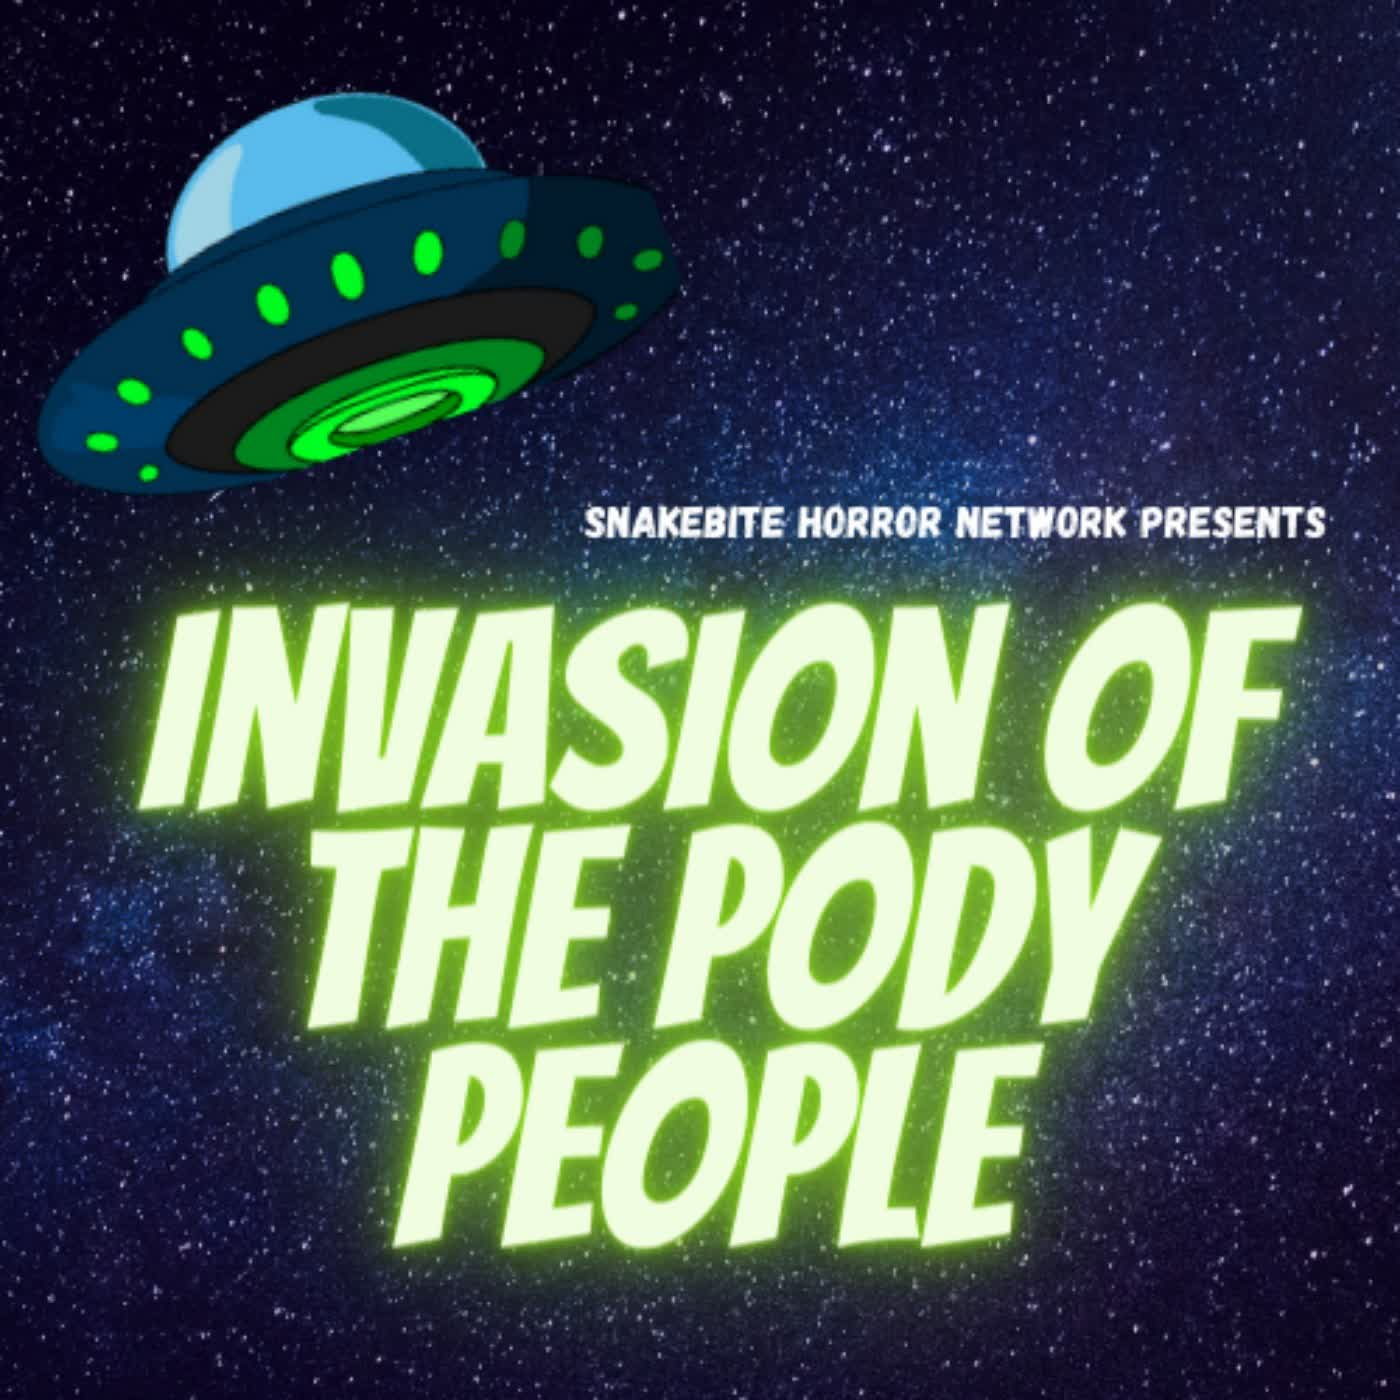 Invasion of the Pody People - The Haunting of Pod House